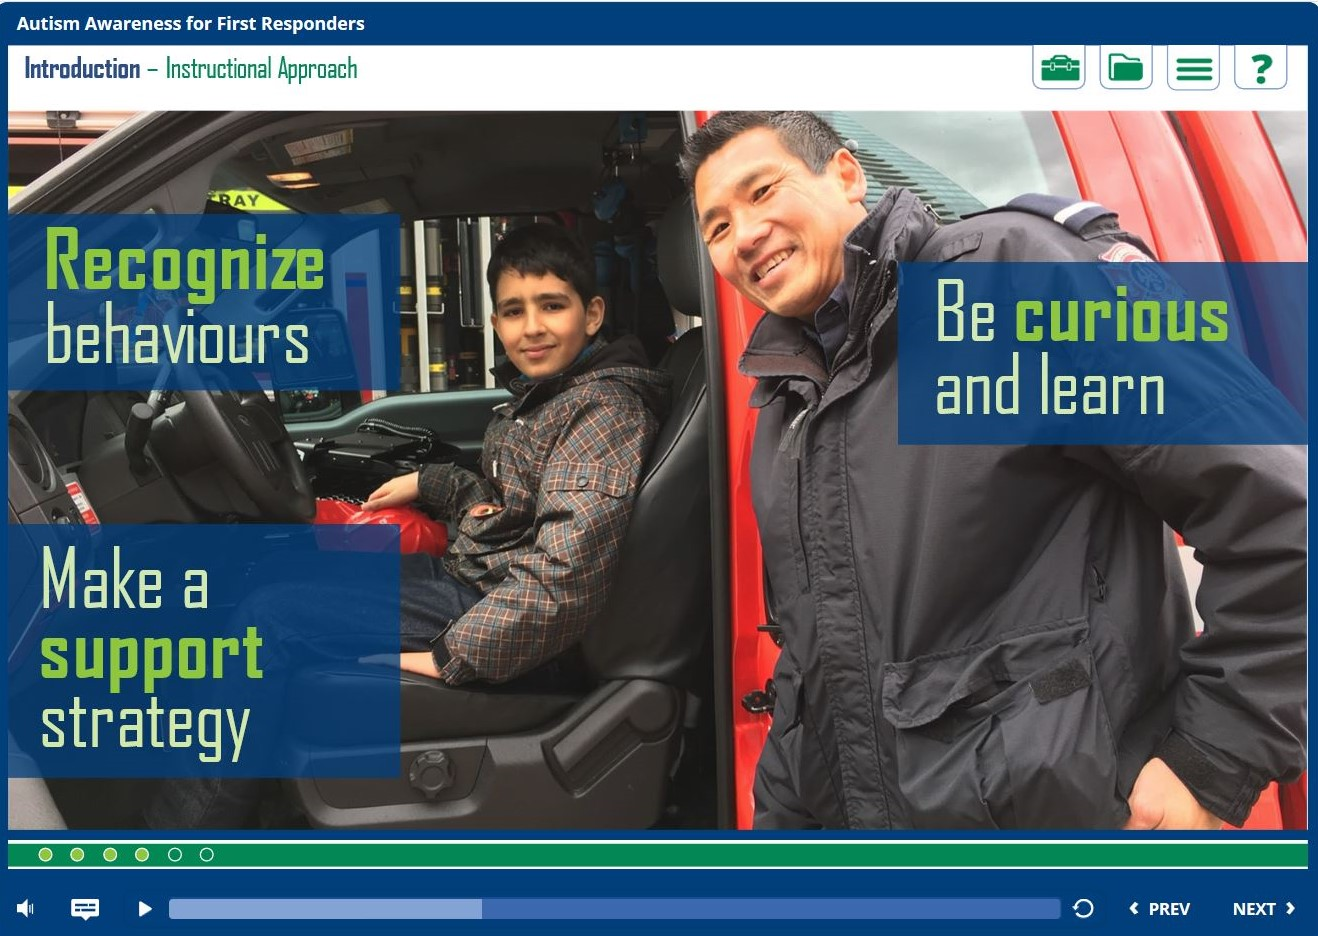 A screen shot of the Autism Awareness eLearning Module for First Responders.